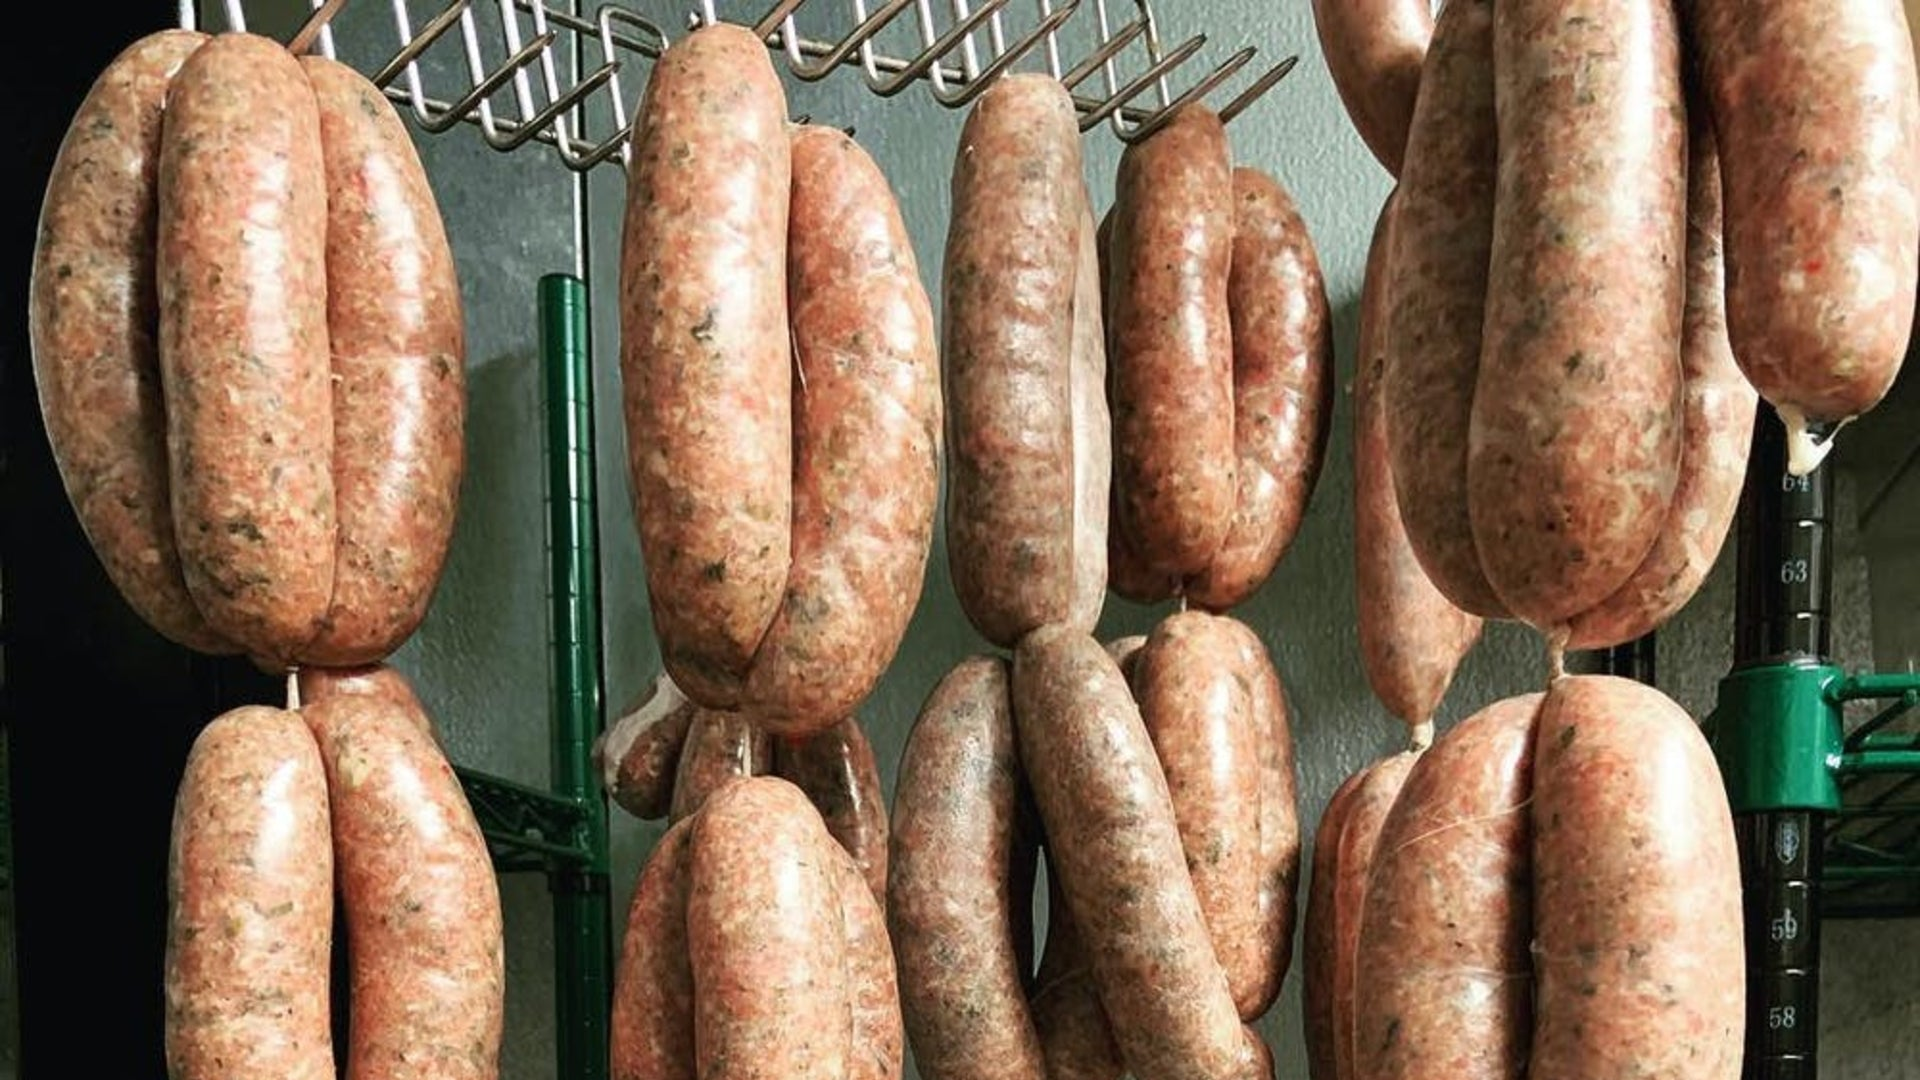 Several sets of sausage links hanging in a smoker to show the equipment needed to smoke sausages when they're hanging.